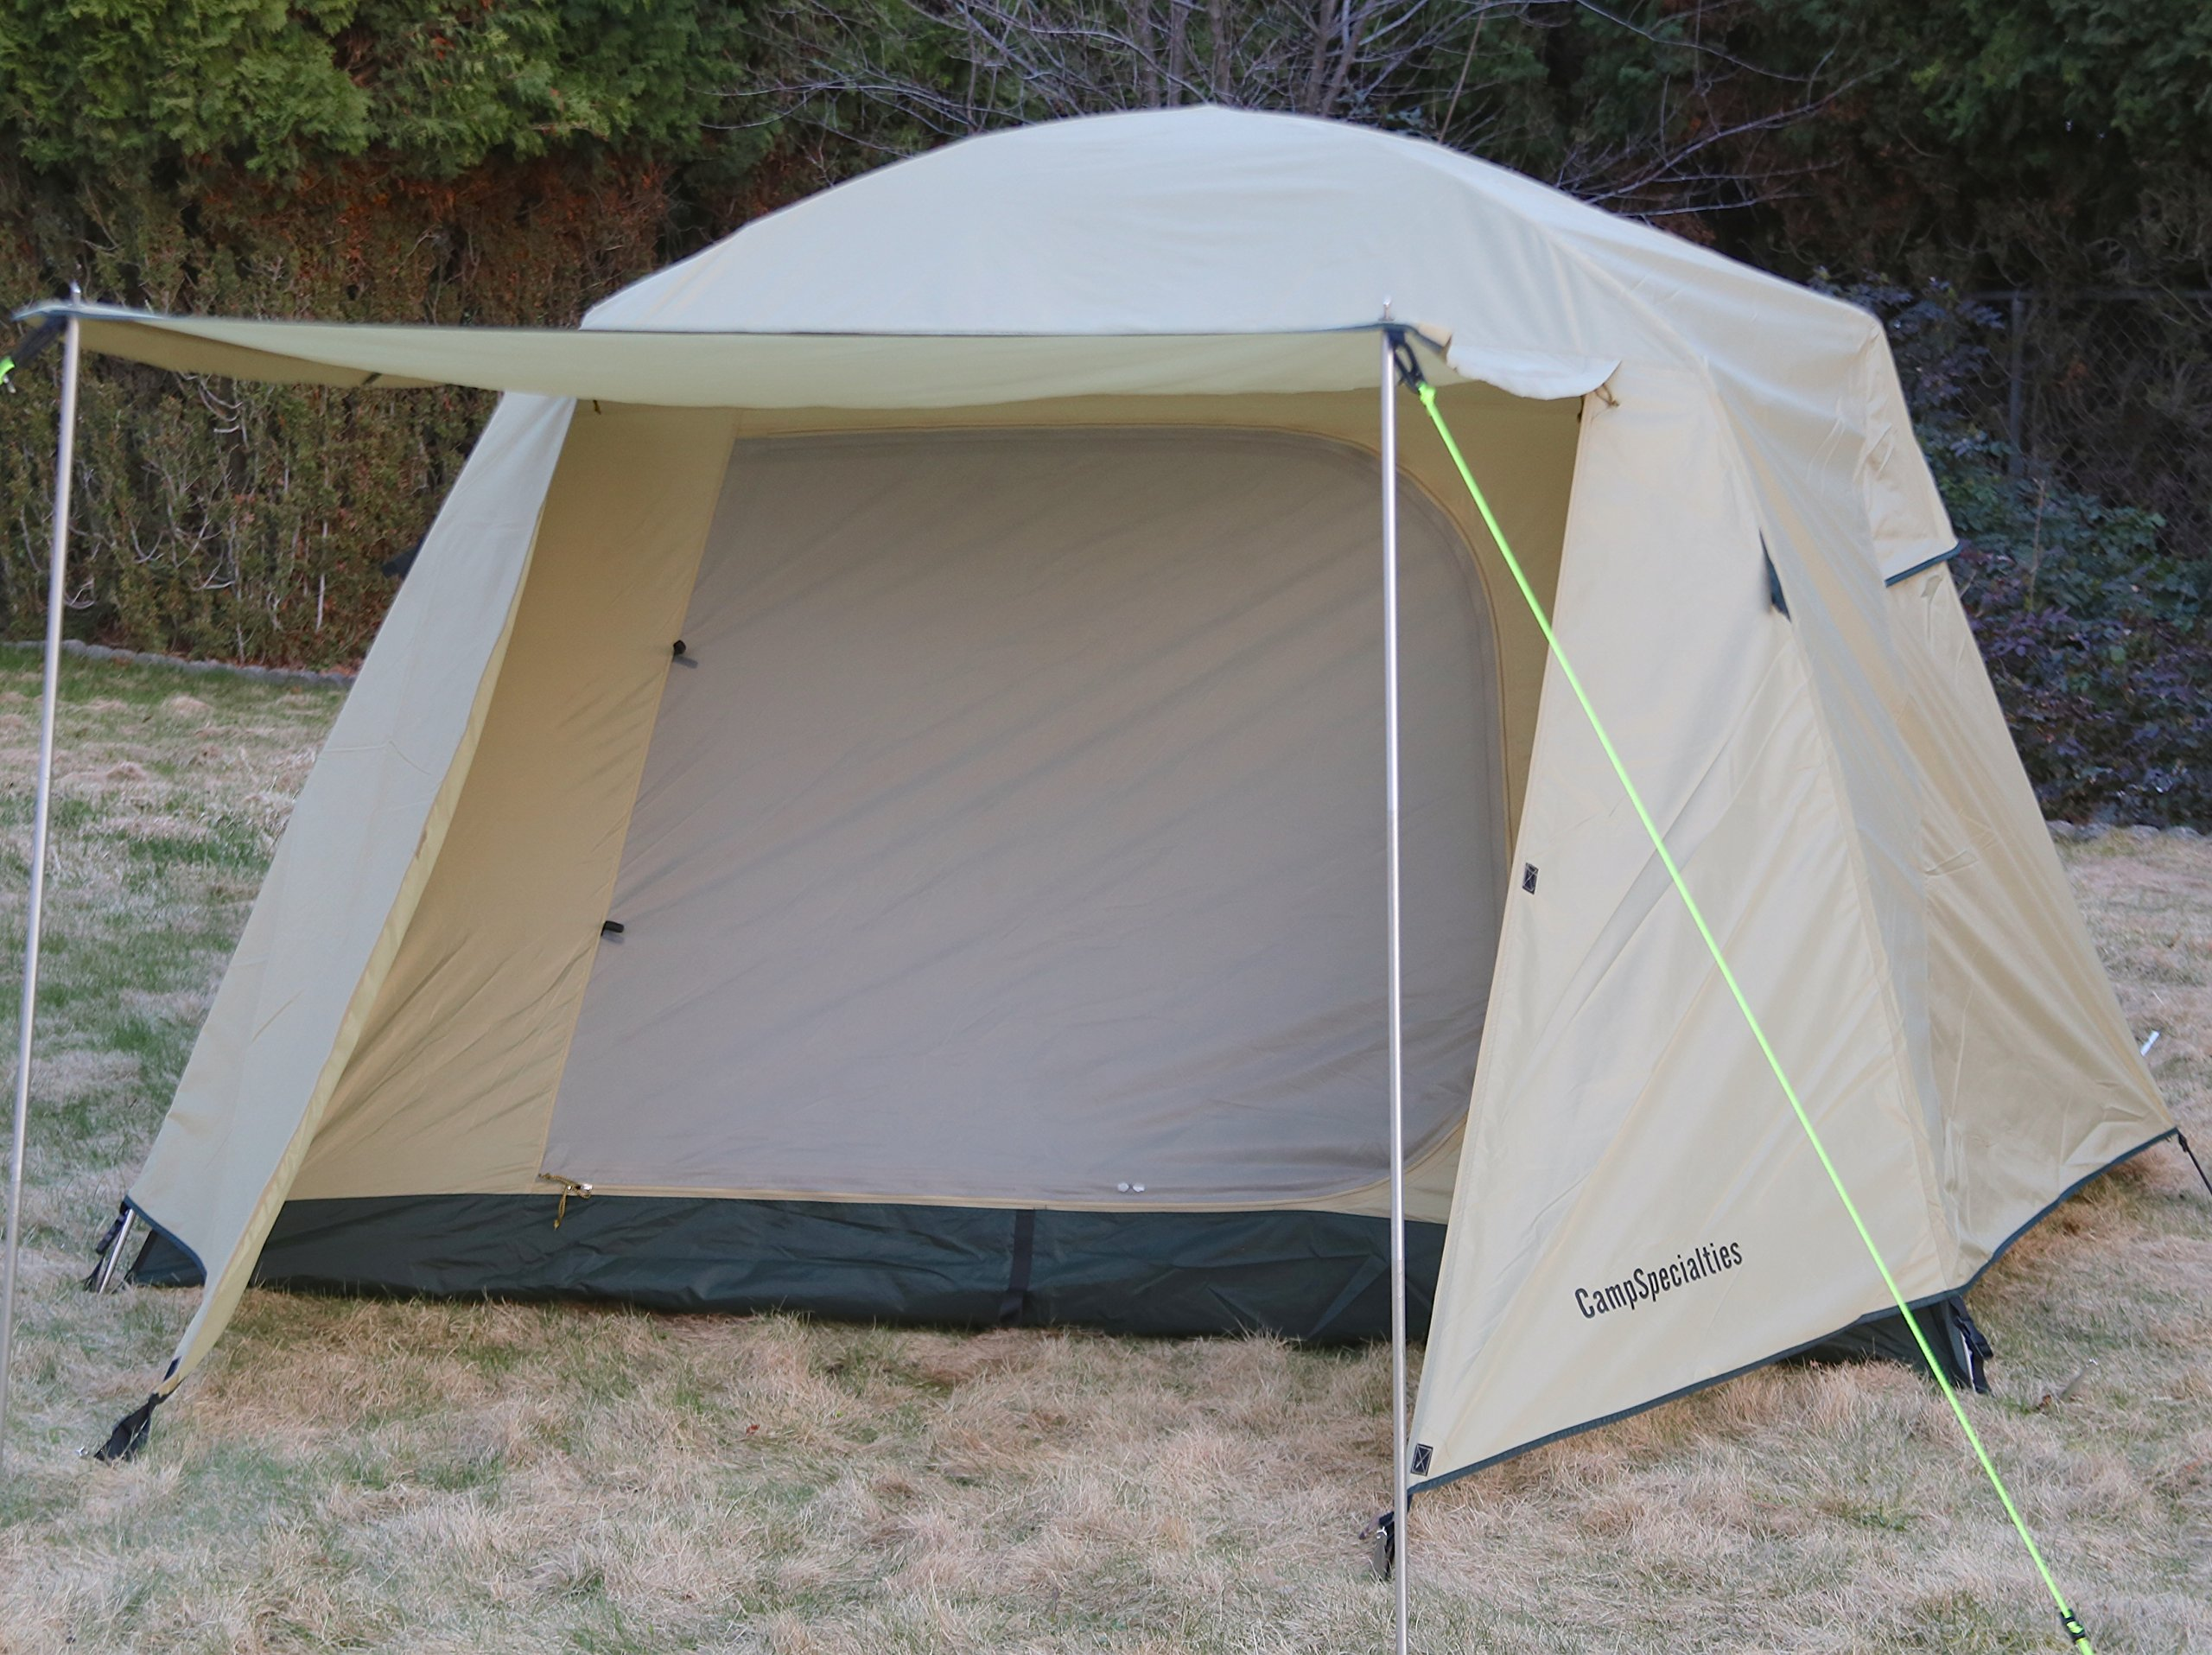 Camp Time Expedition Tent, Fast set-up, 100 square feet including vestibules, floor liner, awning poles, 7001-T6 aluminum, Designed for your cots-stools-tables,. by Camp Specialties (Image #4)